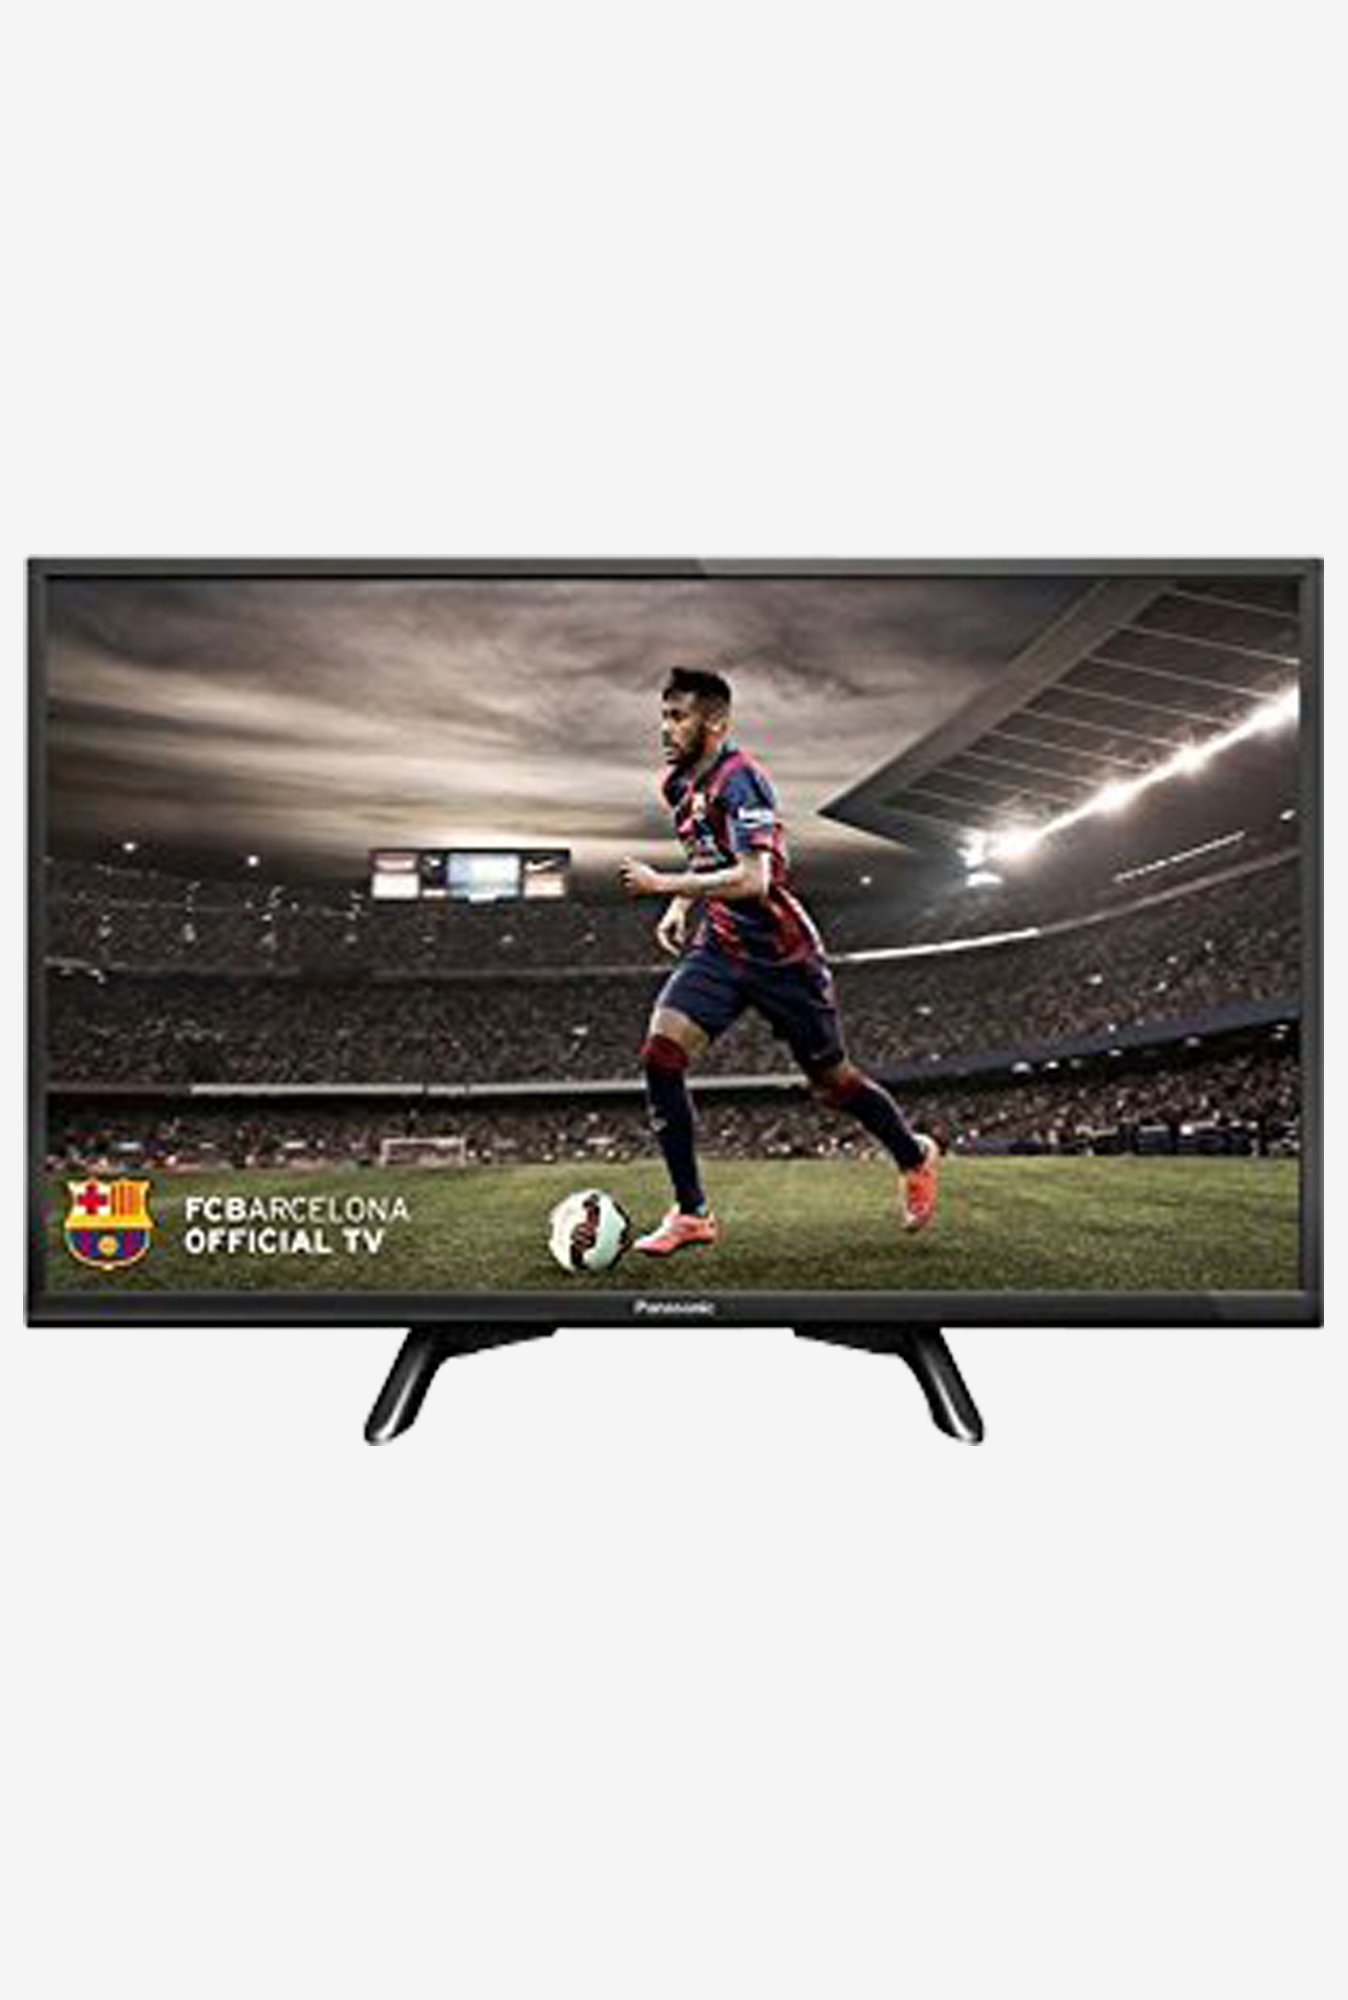 "Panasonic 32C410D 81 cm (32 "") HD Ready LED TV"